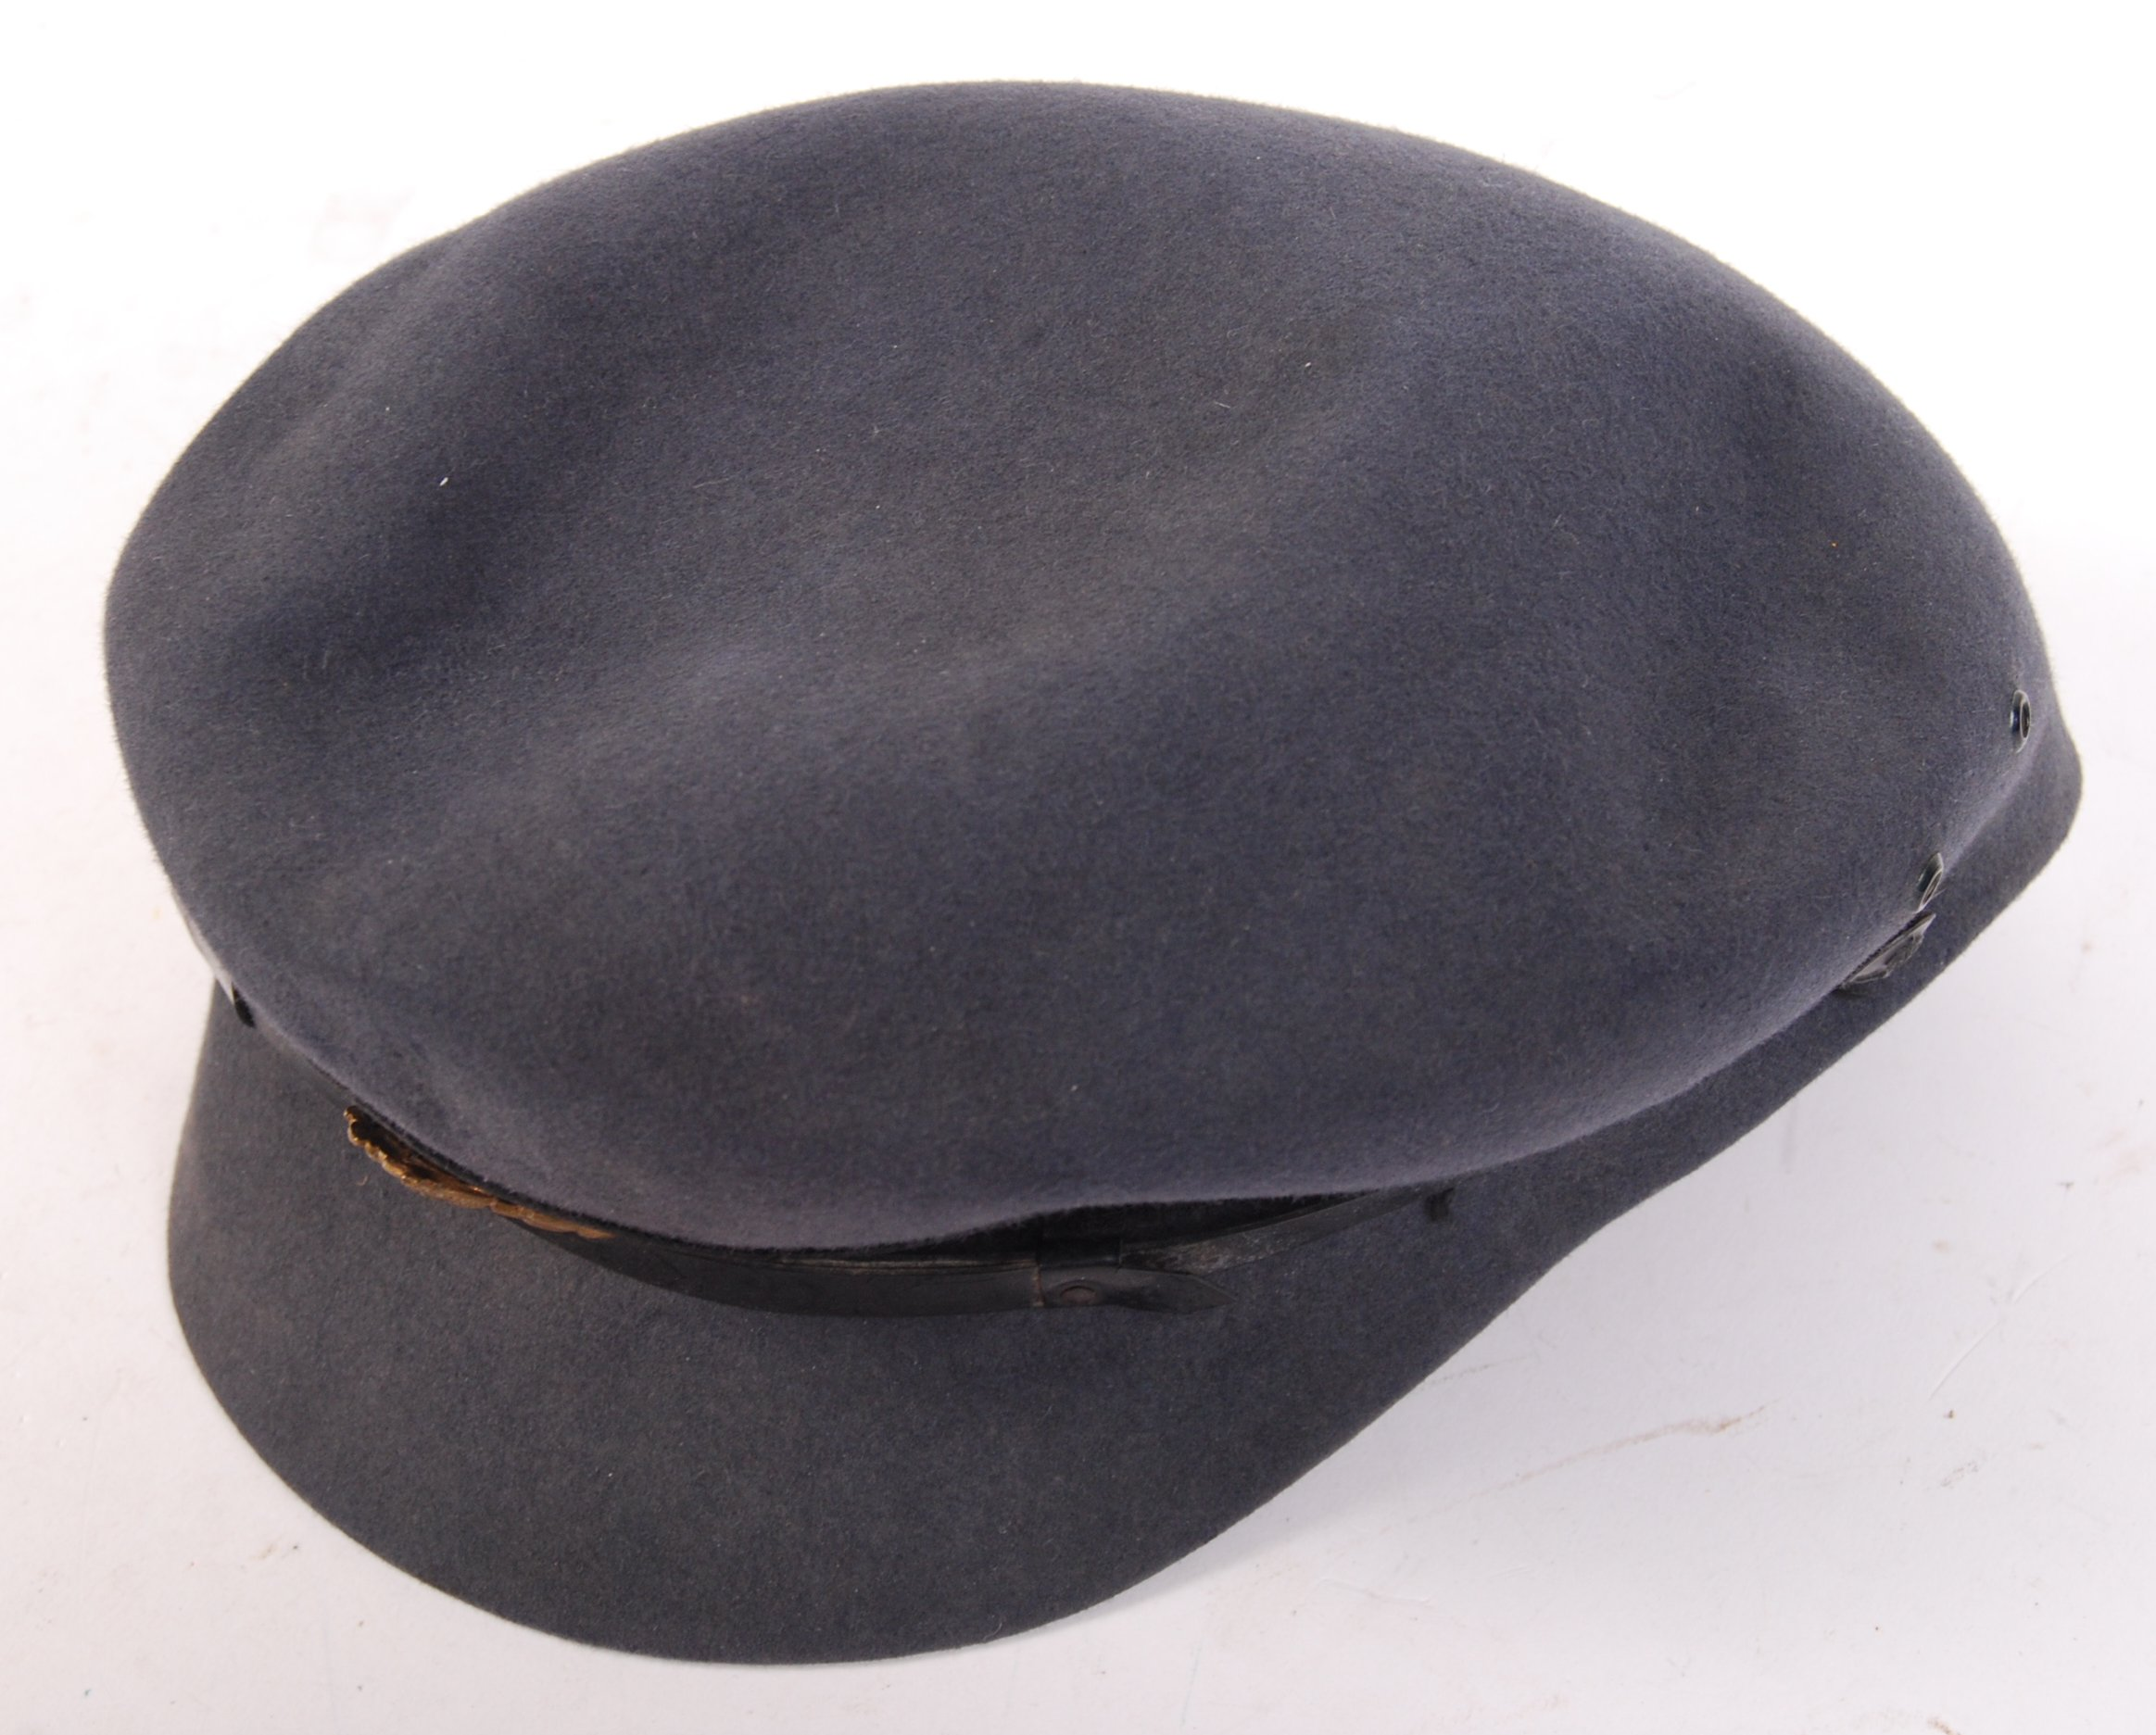 POST-WWII SECOND WORLD WAR RARE WRAF SERVICE CAP - Image 2 of 3